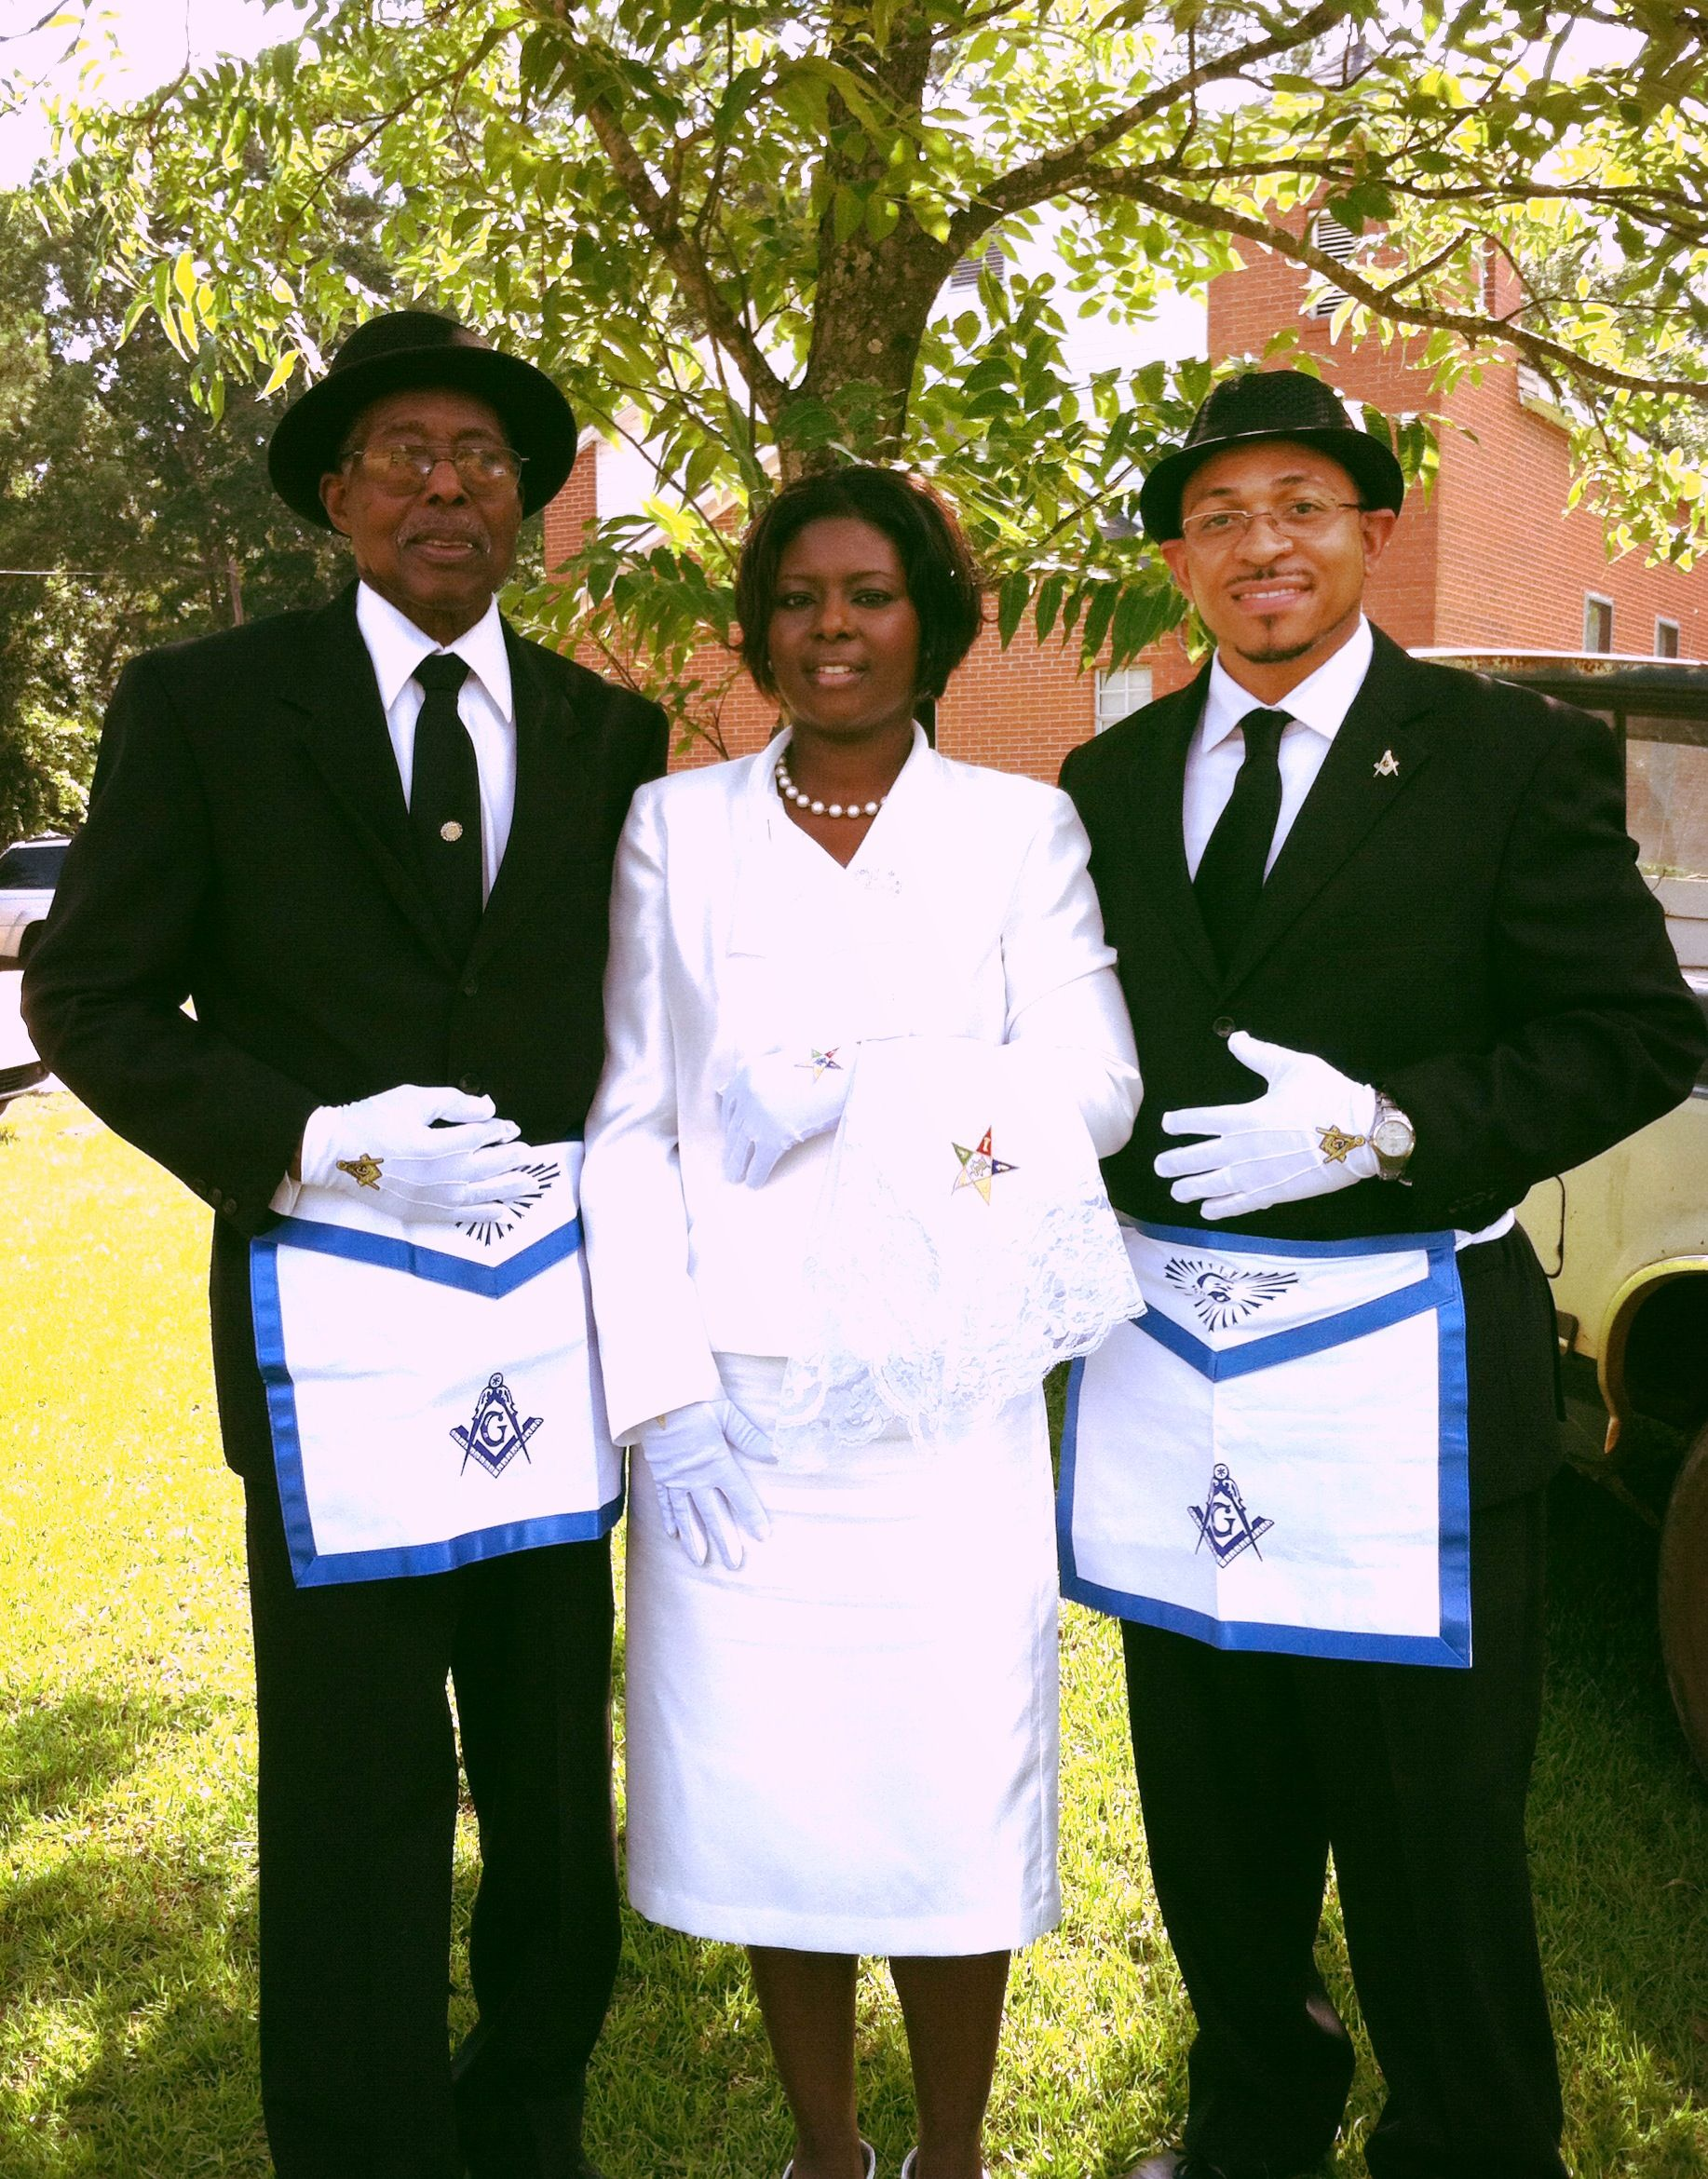 Prince Hall Masons And Sister From Order Of The Eastern Star Prince Hall Eastern Star Prince Hall Mason Order Of The Eastern Star